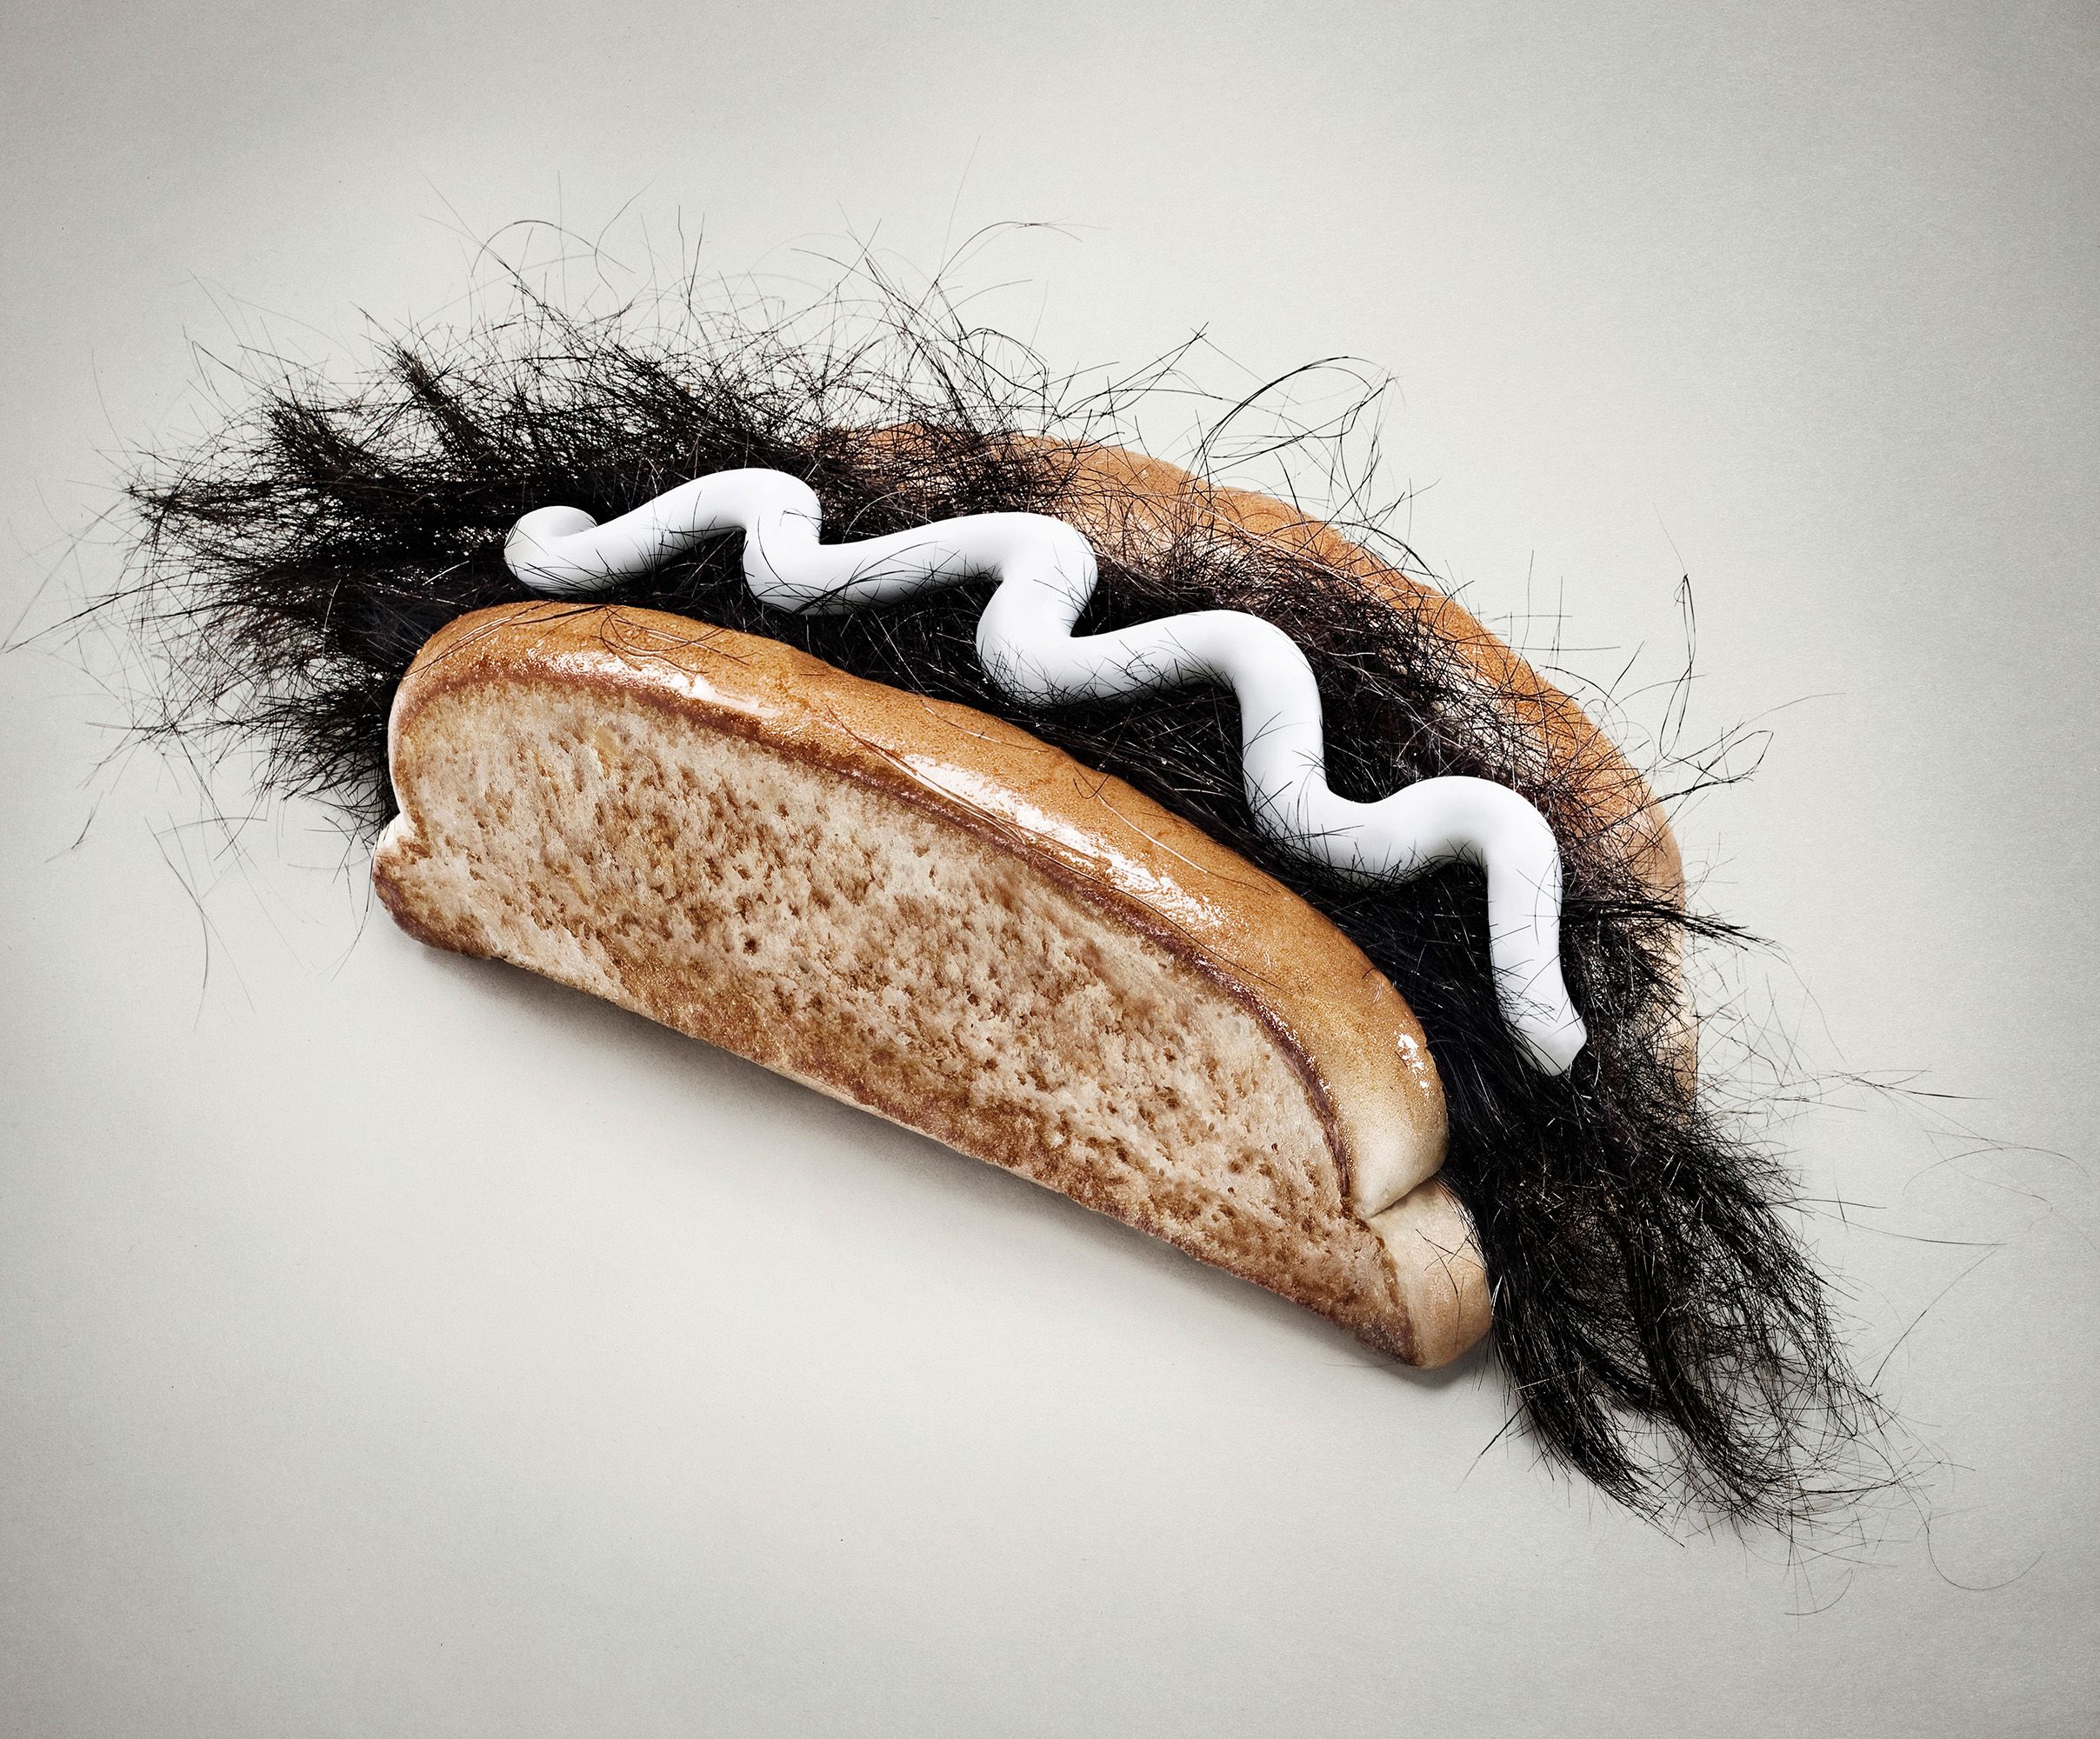 SLOCHE CRÈME À BARBE • HOT DOG  Client: Couche-Tard Agence: DentsuBos Création: Simon Beaudry, Martin Bernier Photo: Alain Desjean Retouche photo: Claude Lafrance   Prix 2012 Grand Prix Lux • Publicité 2013 Applied Arts • Advertising photography